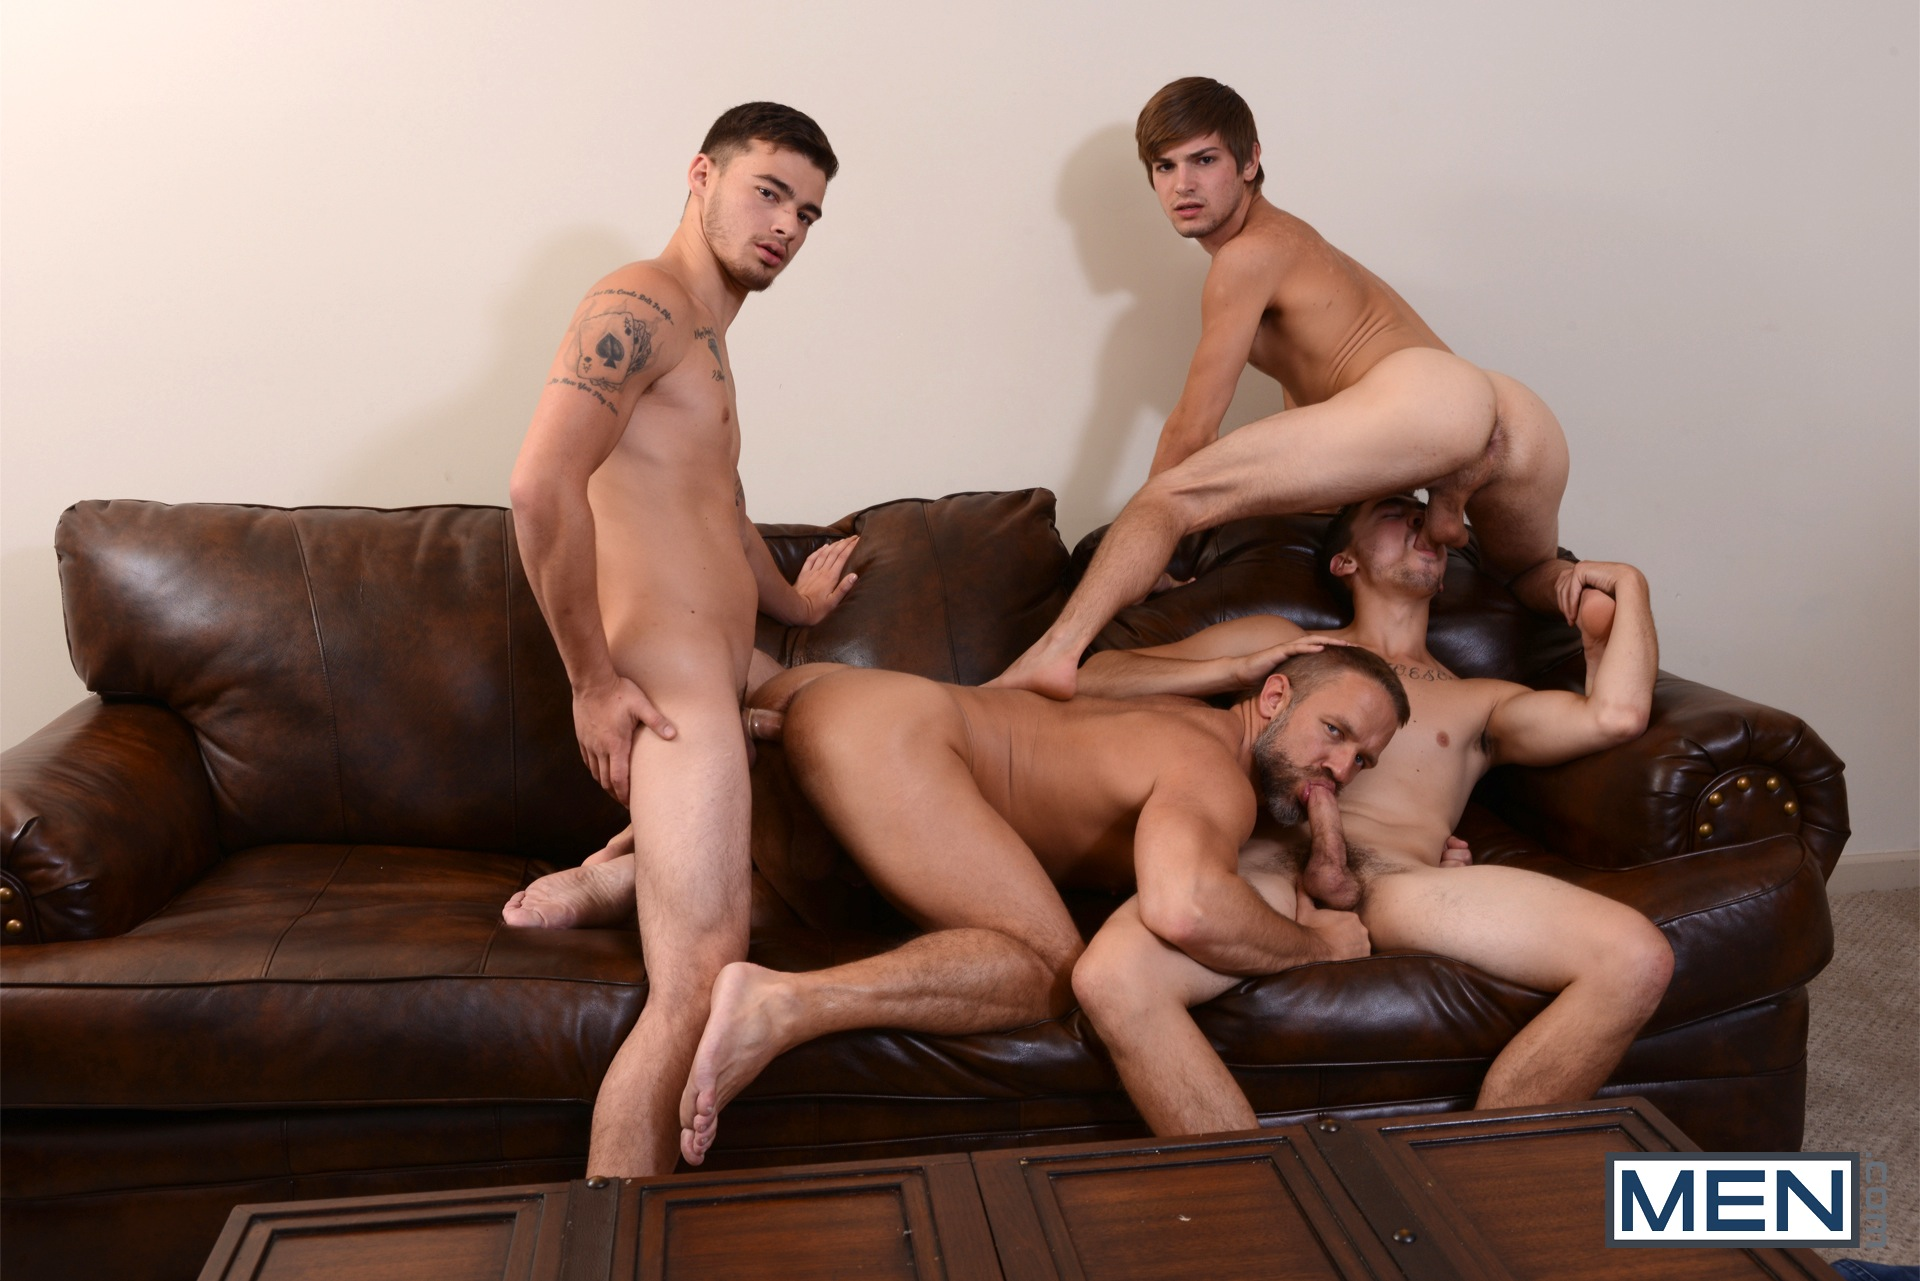 gay groupe anal penetretion douleur